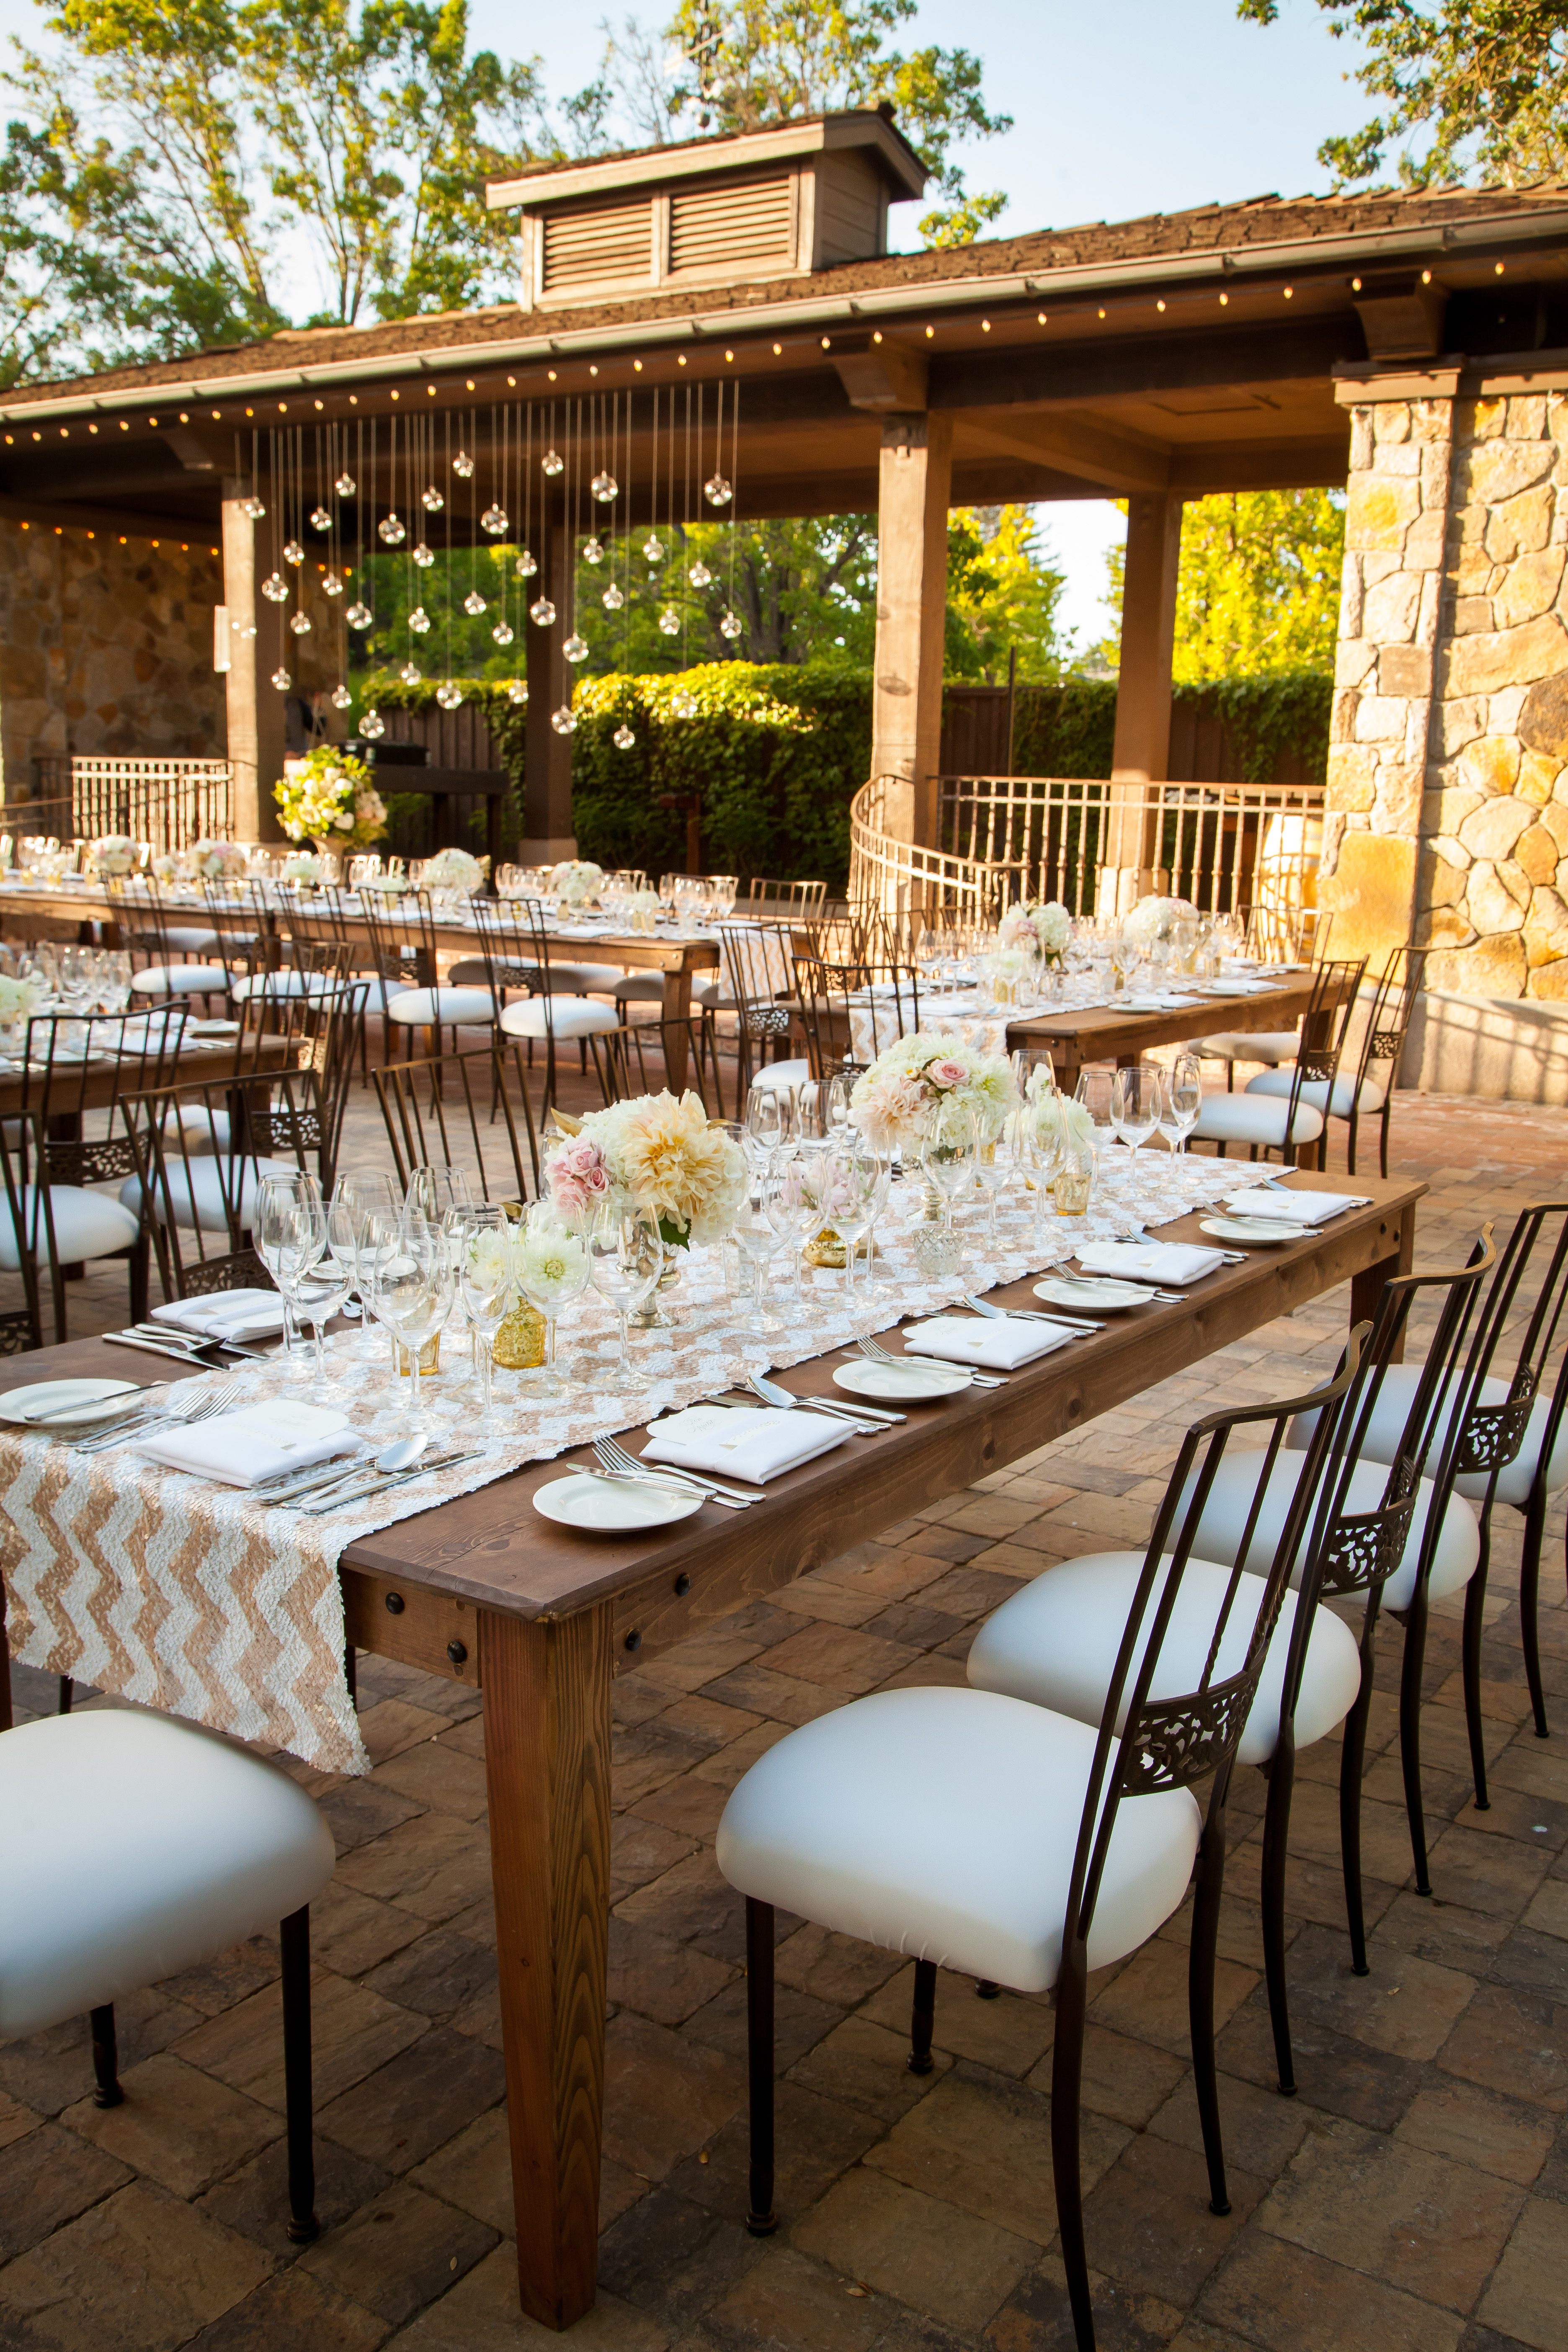 Weddings - Chair Rentals, Chairs Sales by Chameleon Chair Collection